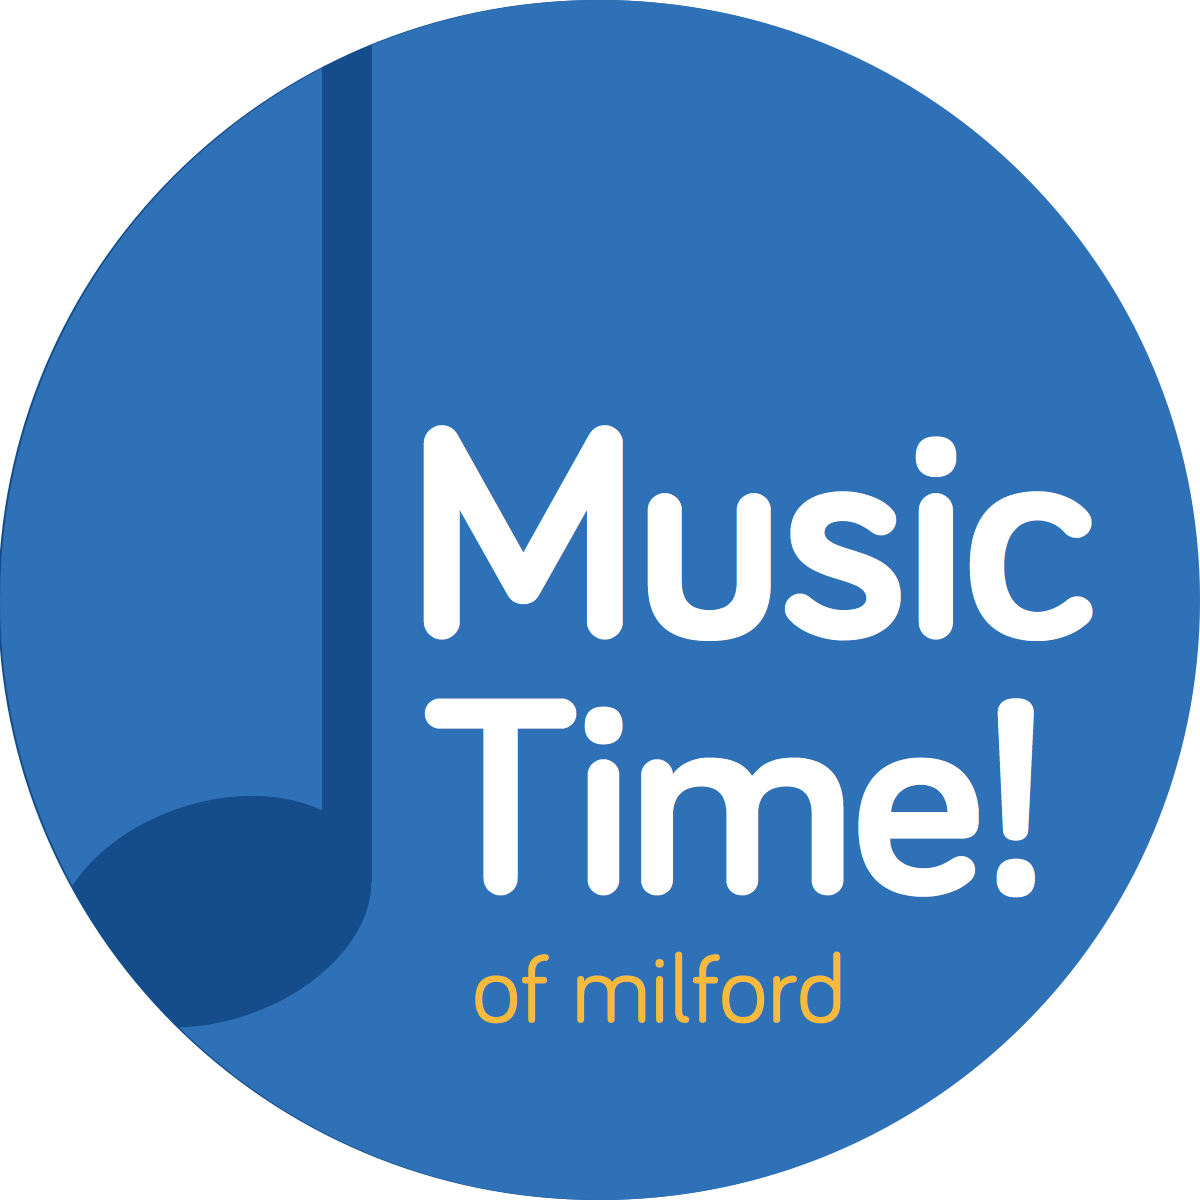 Music Time! of Milford